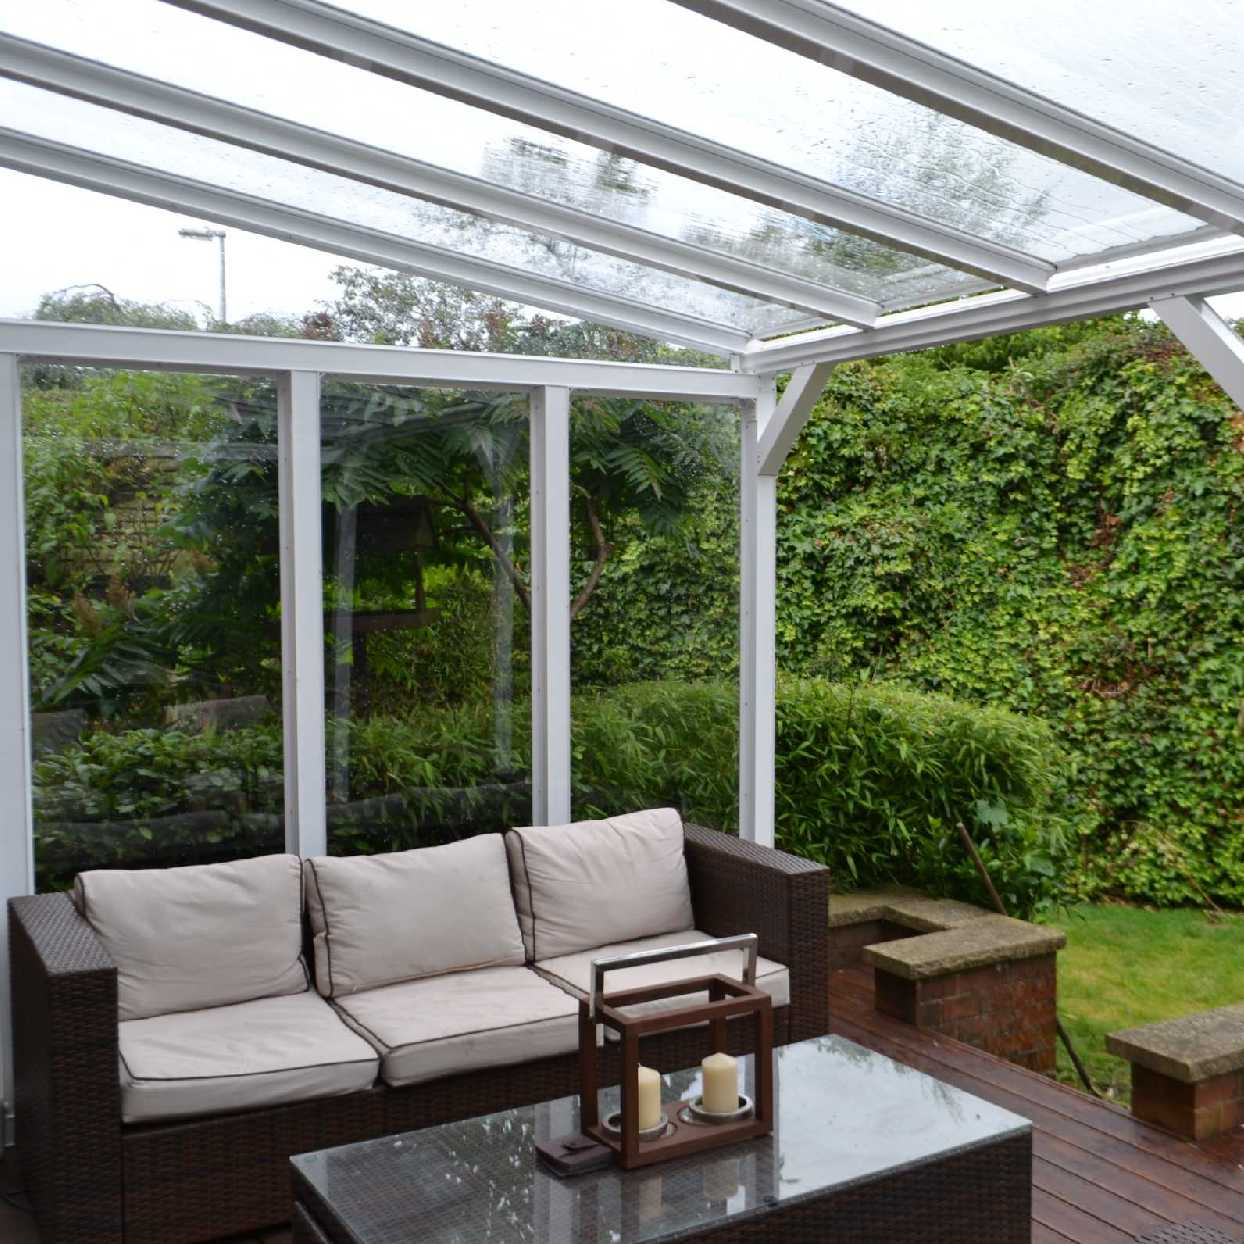 Great selection of Omega Smart Lean-To Canopy with 16mm Polycarbonate Glazing - 11.6m (W) x 3.0m (P), (5) Supporting Posts